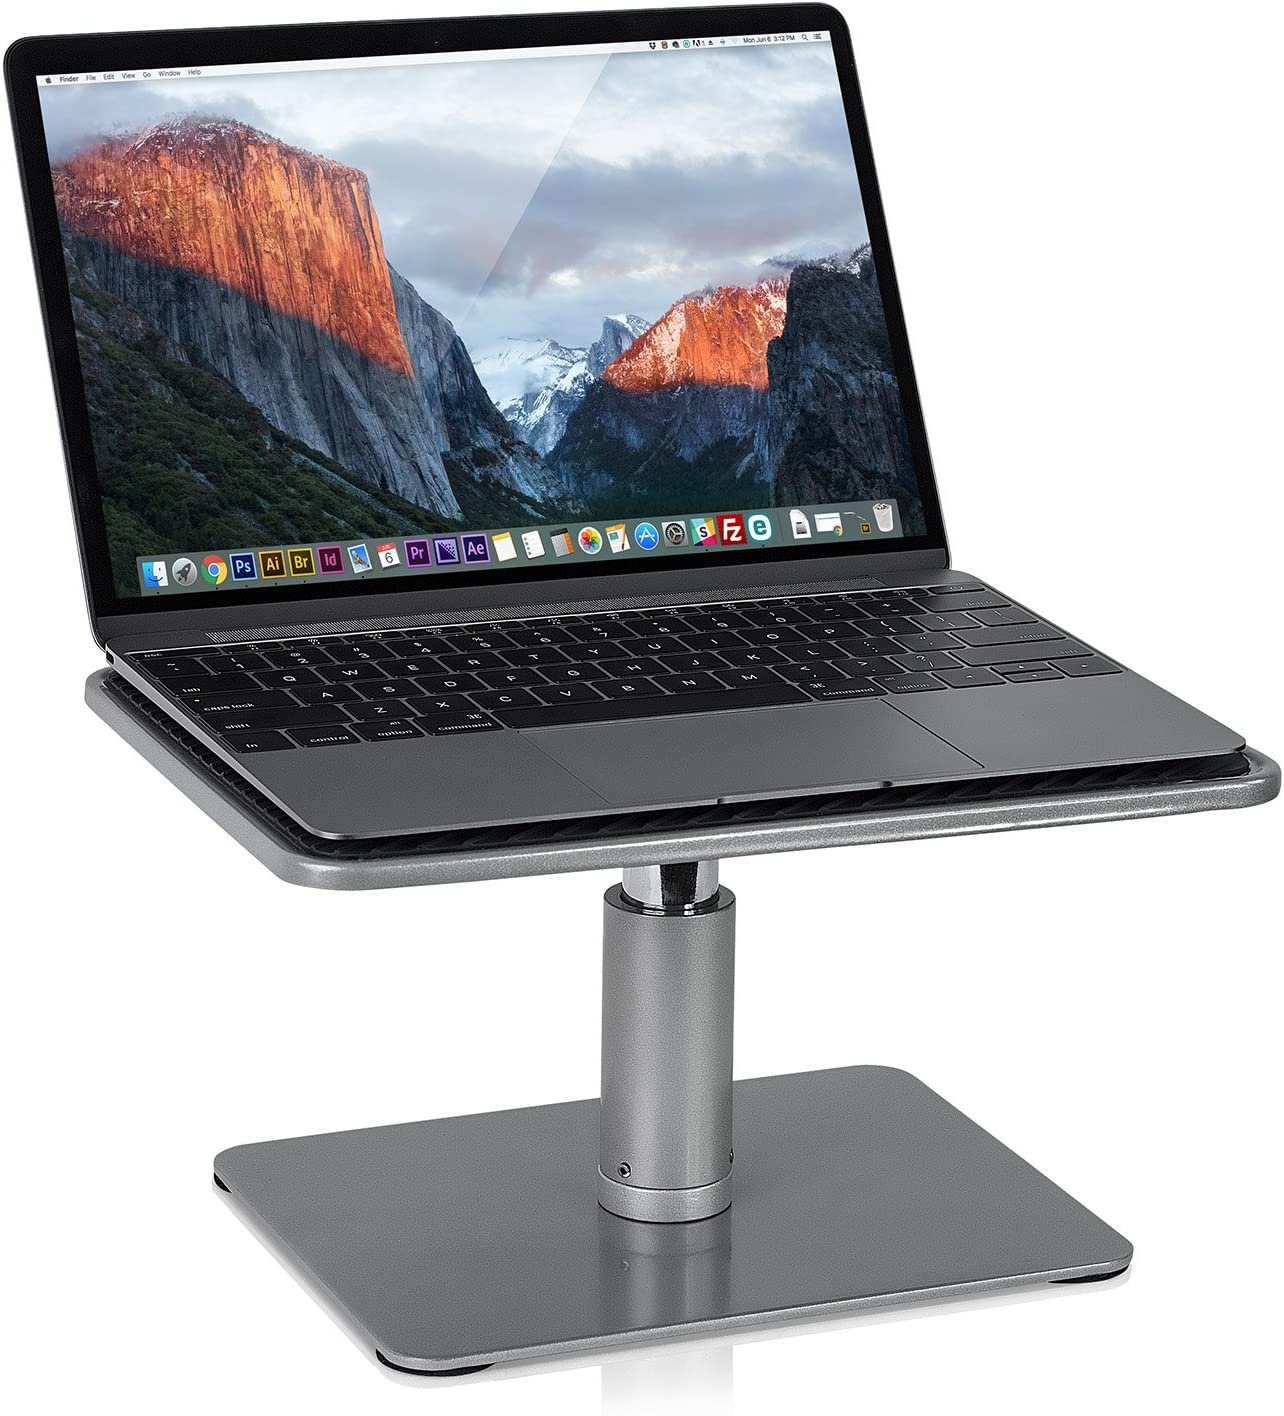 Mount-It! Adjustable Height Laptop Stand for MacBook Pro | Wide Platform Laptop & Monitor Desk Riser | Ergonomic Desk Riser Stand for MacBook and 11-15 Inch Laptops | 24-32 Inch Monitor Stand Riser